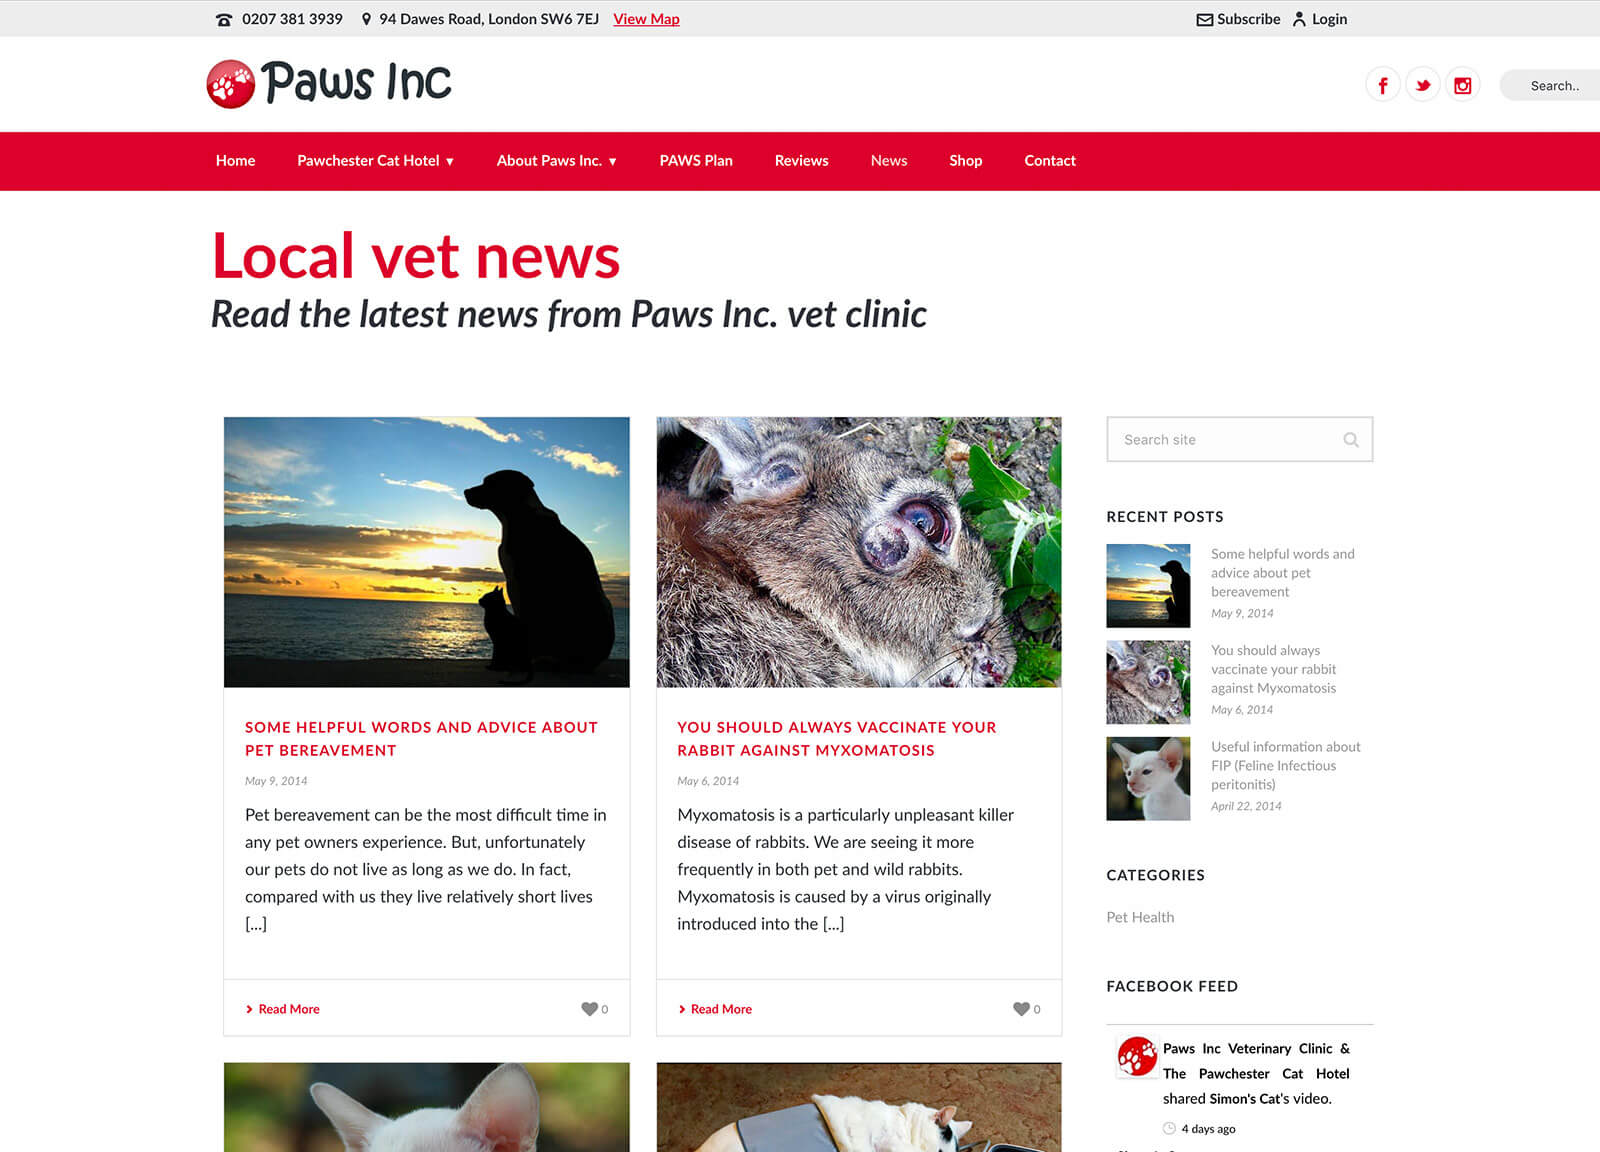 Cat hotel and vet practice website design - Vet news page